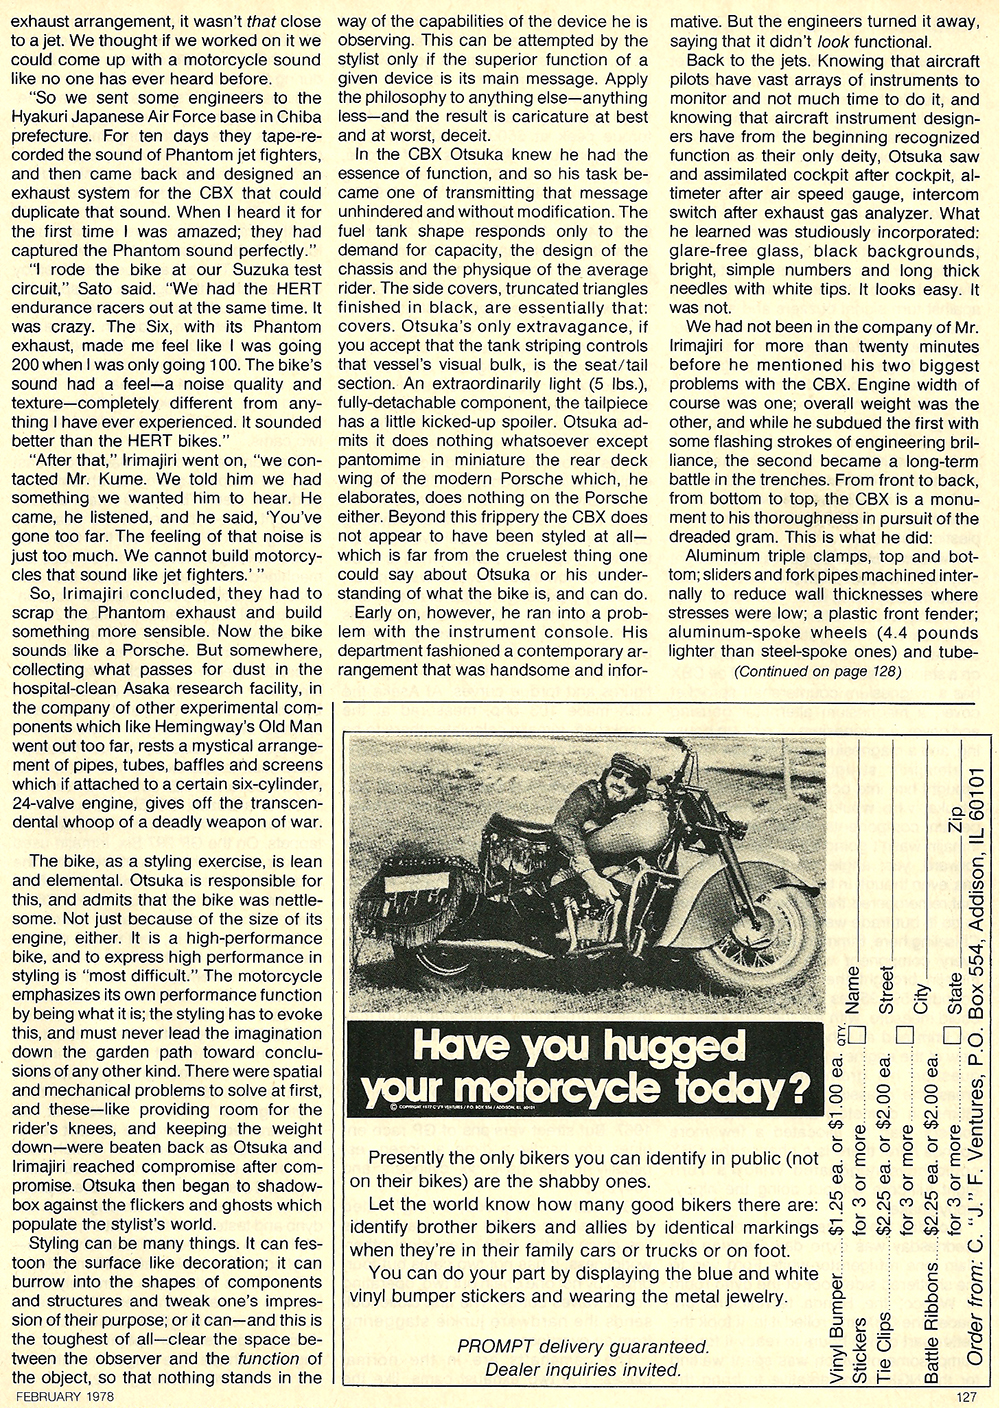 1978 Honda CBX Super Sport road test 14.jpg